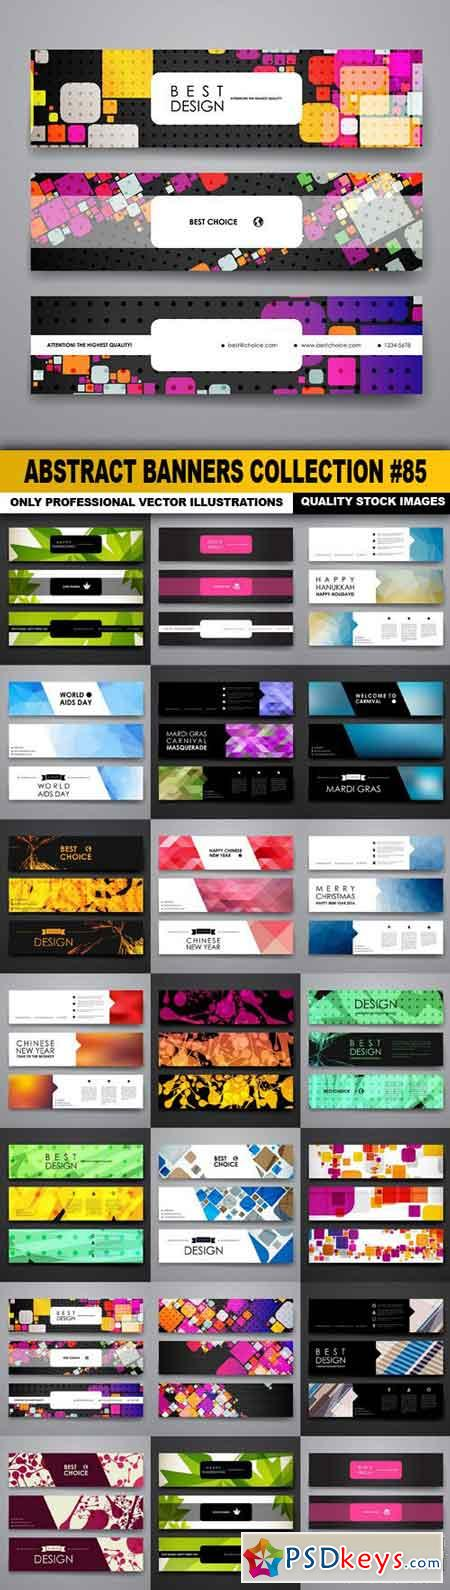 Abstract Banners Collection #85 - 20 Vectors